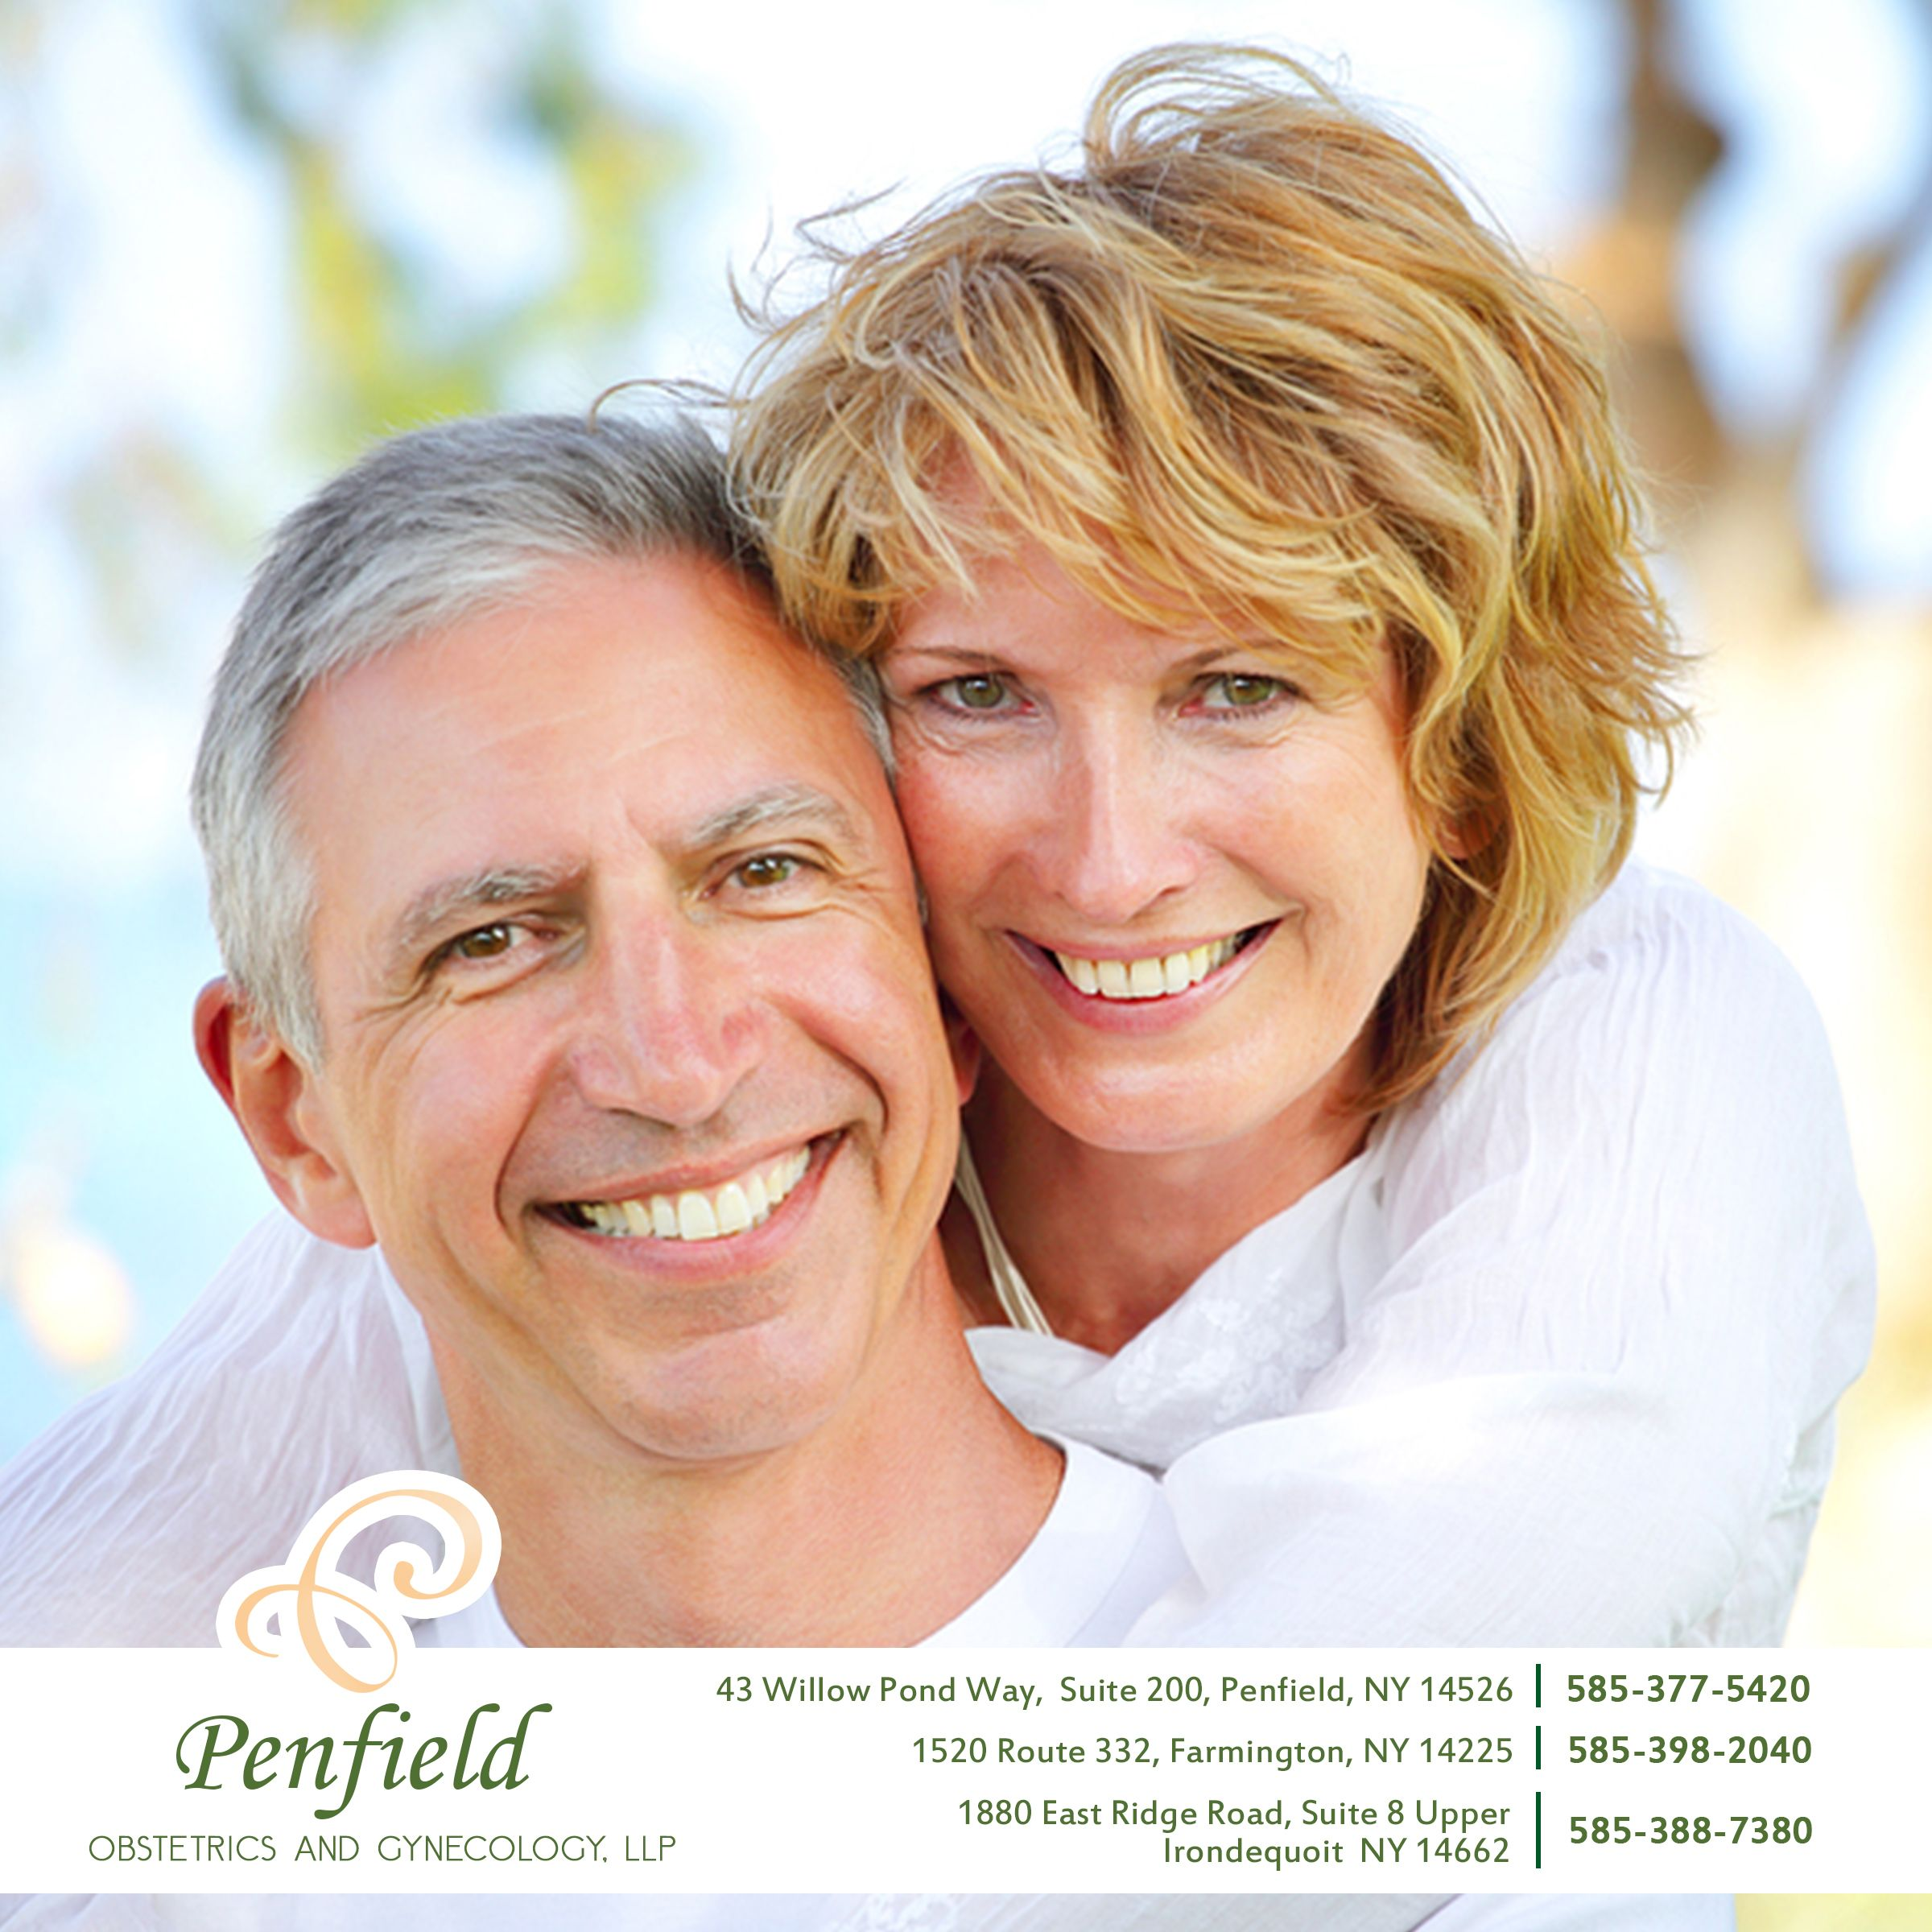 Pin by Penfield OB Gyn on Penfield Ob-Gyn | Life insurance ...